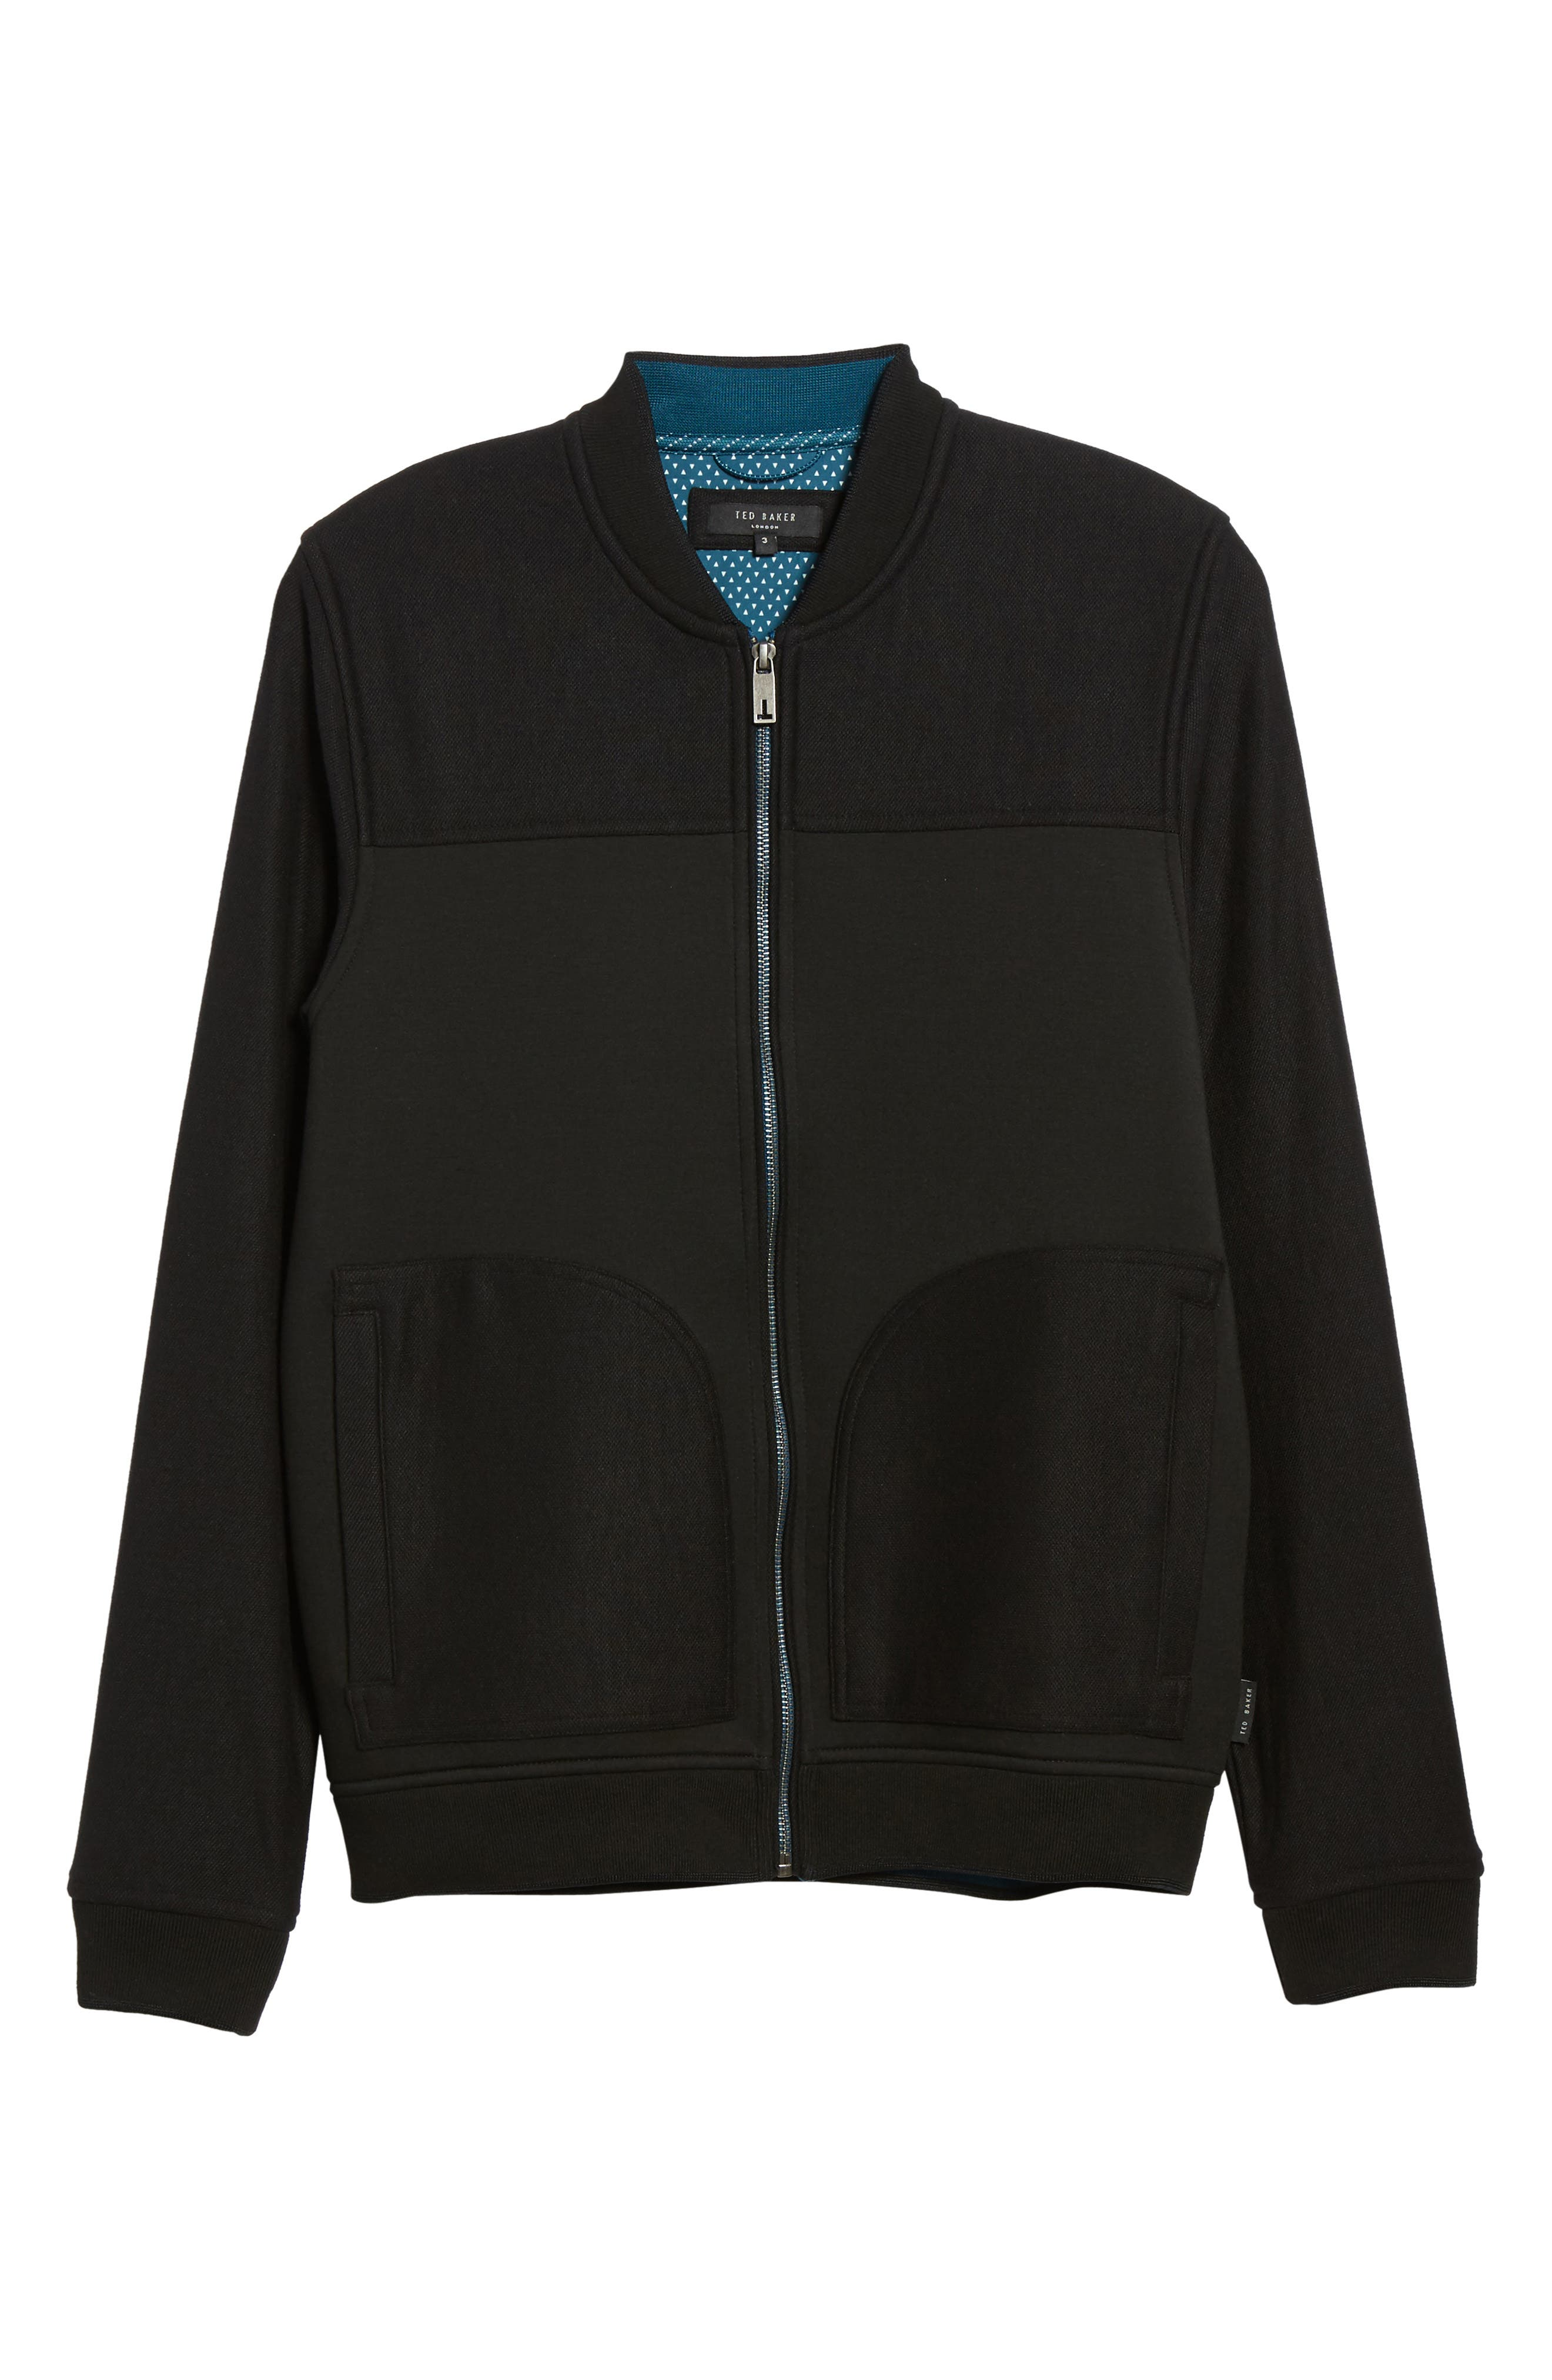 Outme Trim Textured Bomber,                             Alternate thumbnail 6, color,                             001